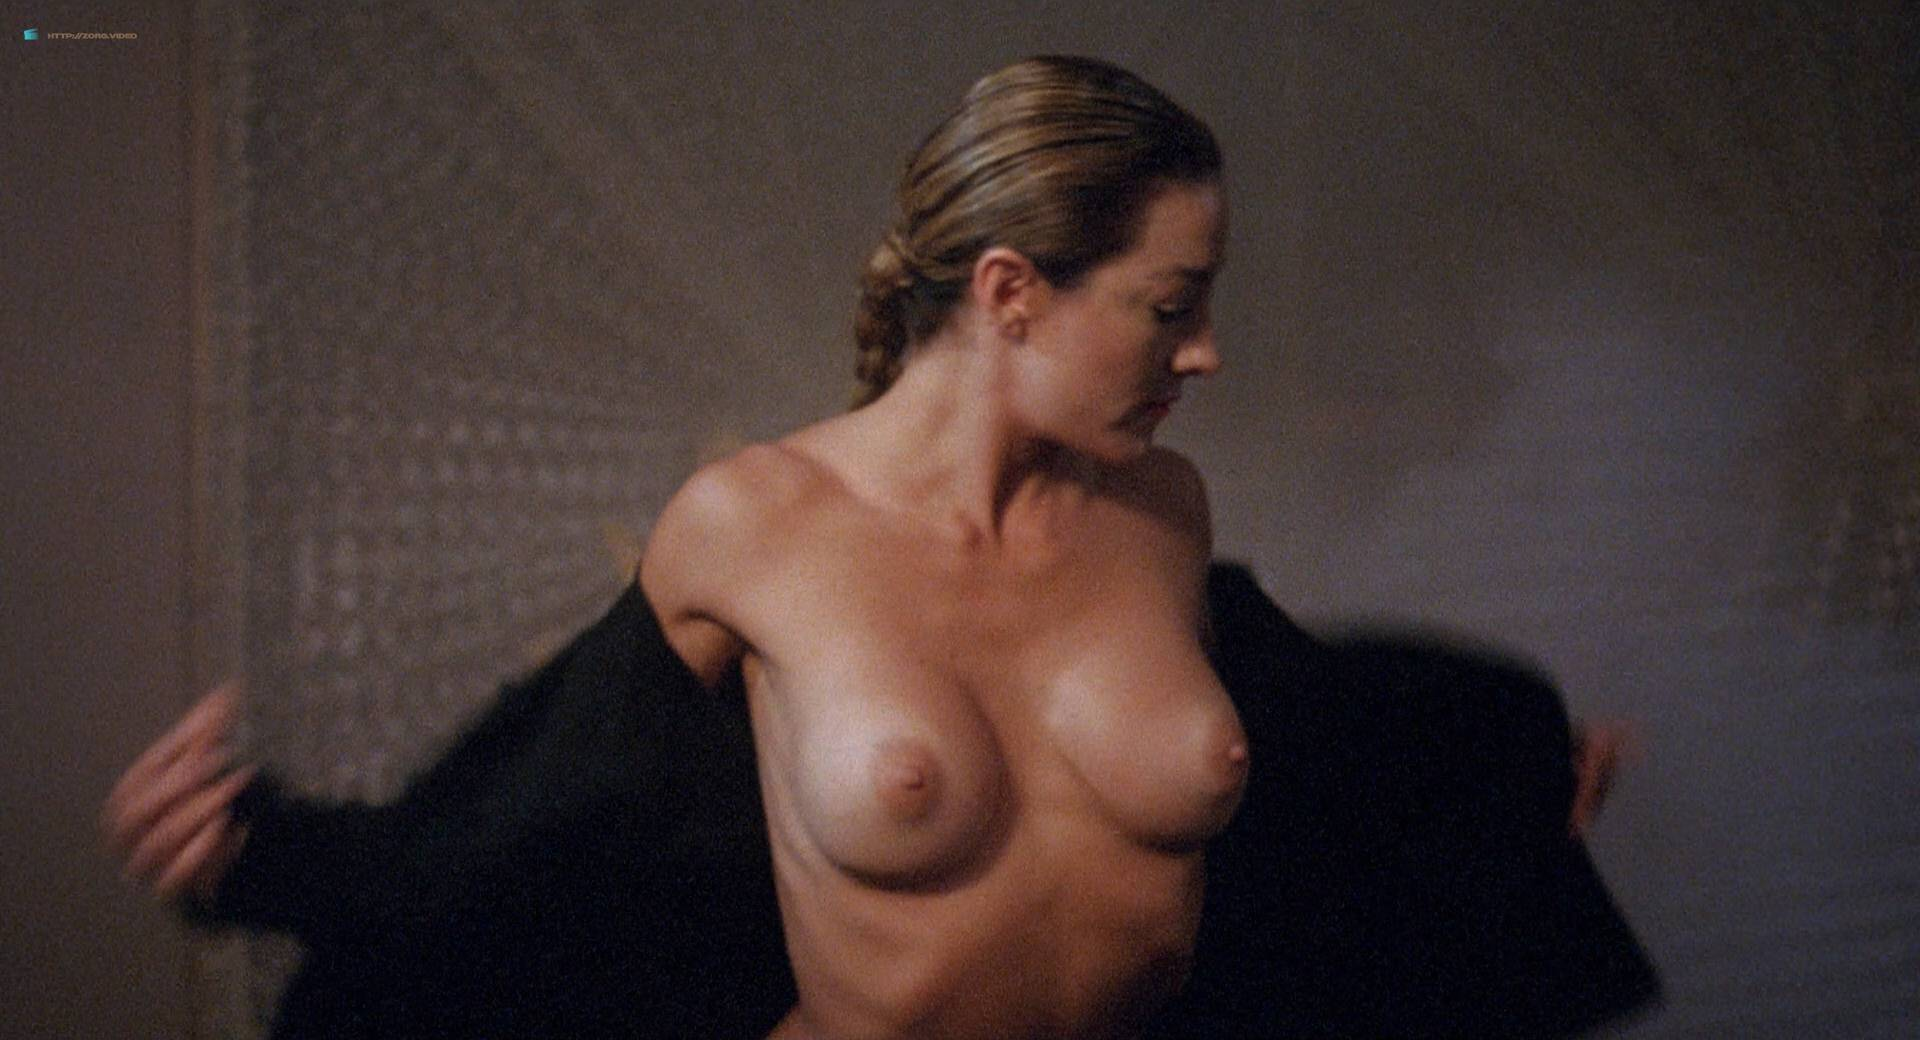 Roxanna Michaels nude Tiffany Million and others nude bush butt - Caged Fury (1989) HD 1080p BluRay (15)